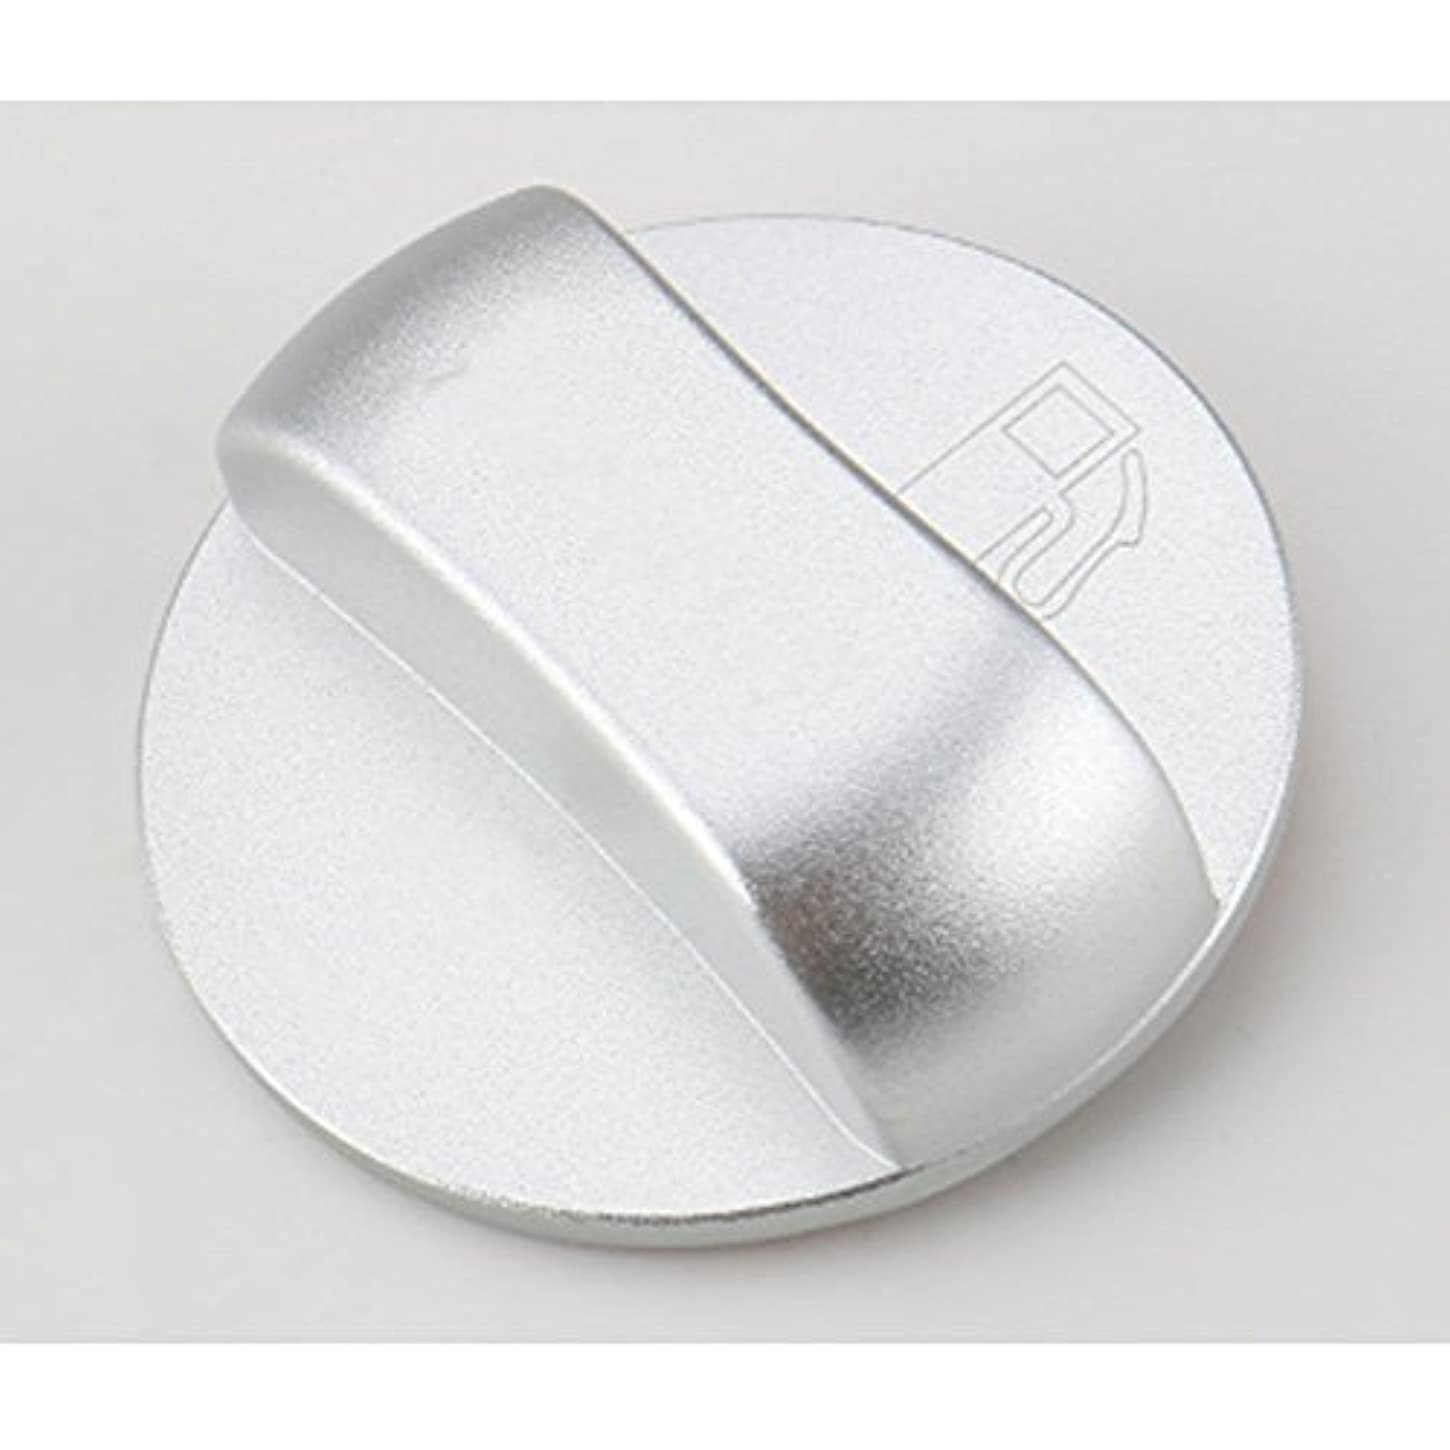 書道呪われた手錠Jicorzo - For Suzuki Jimny 07-15 Gasoline Petrol Filler Fuel Tank Cap Cover Trim Gas Cap Car-Styling Aluminum...